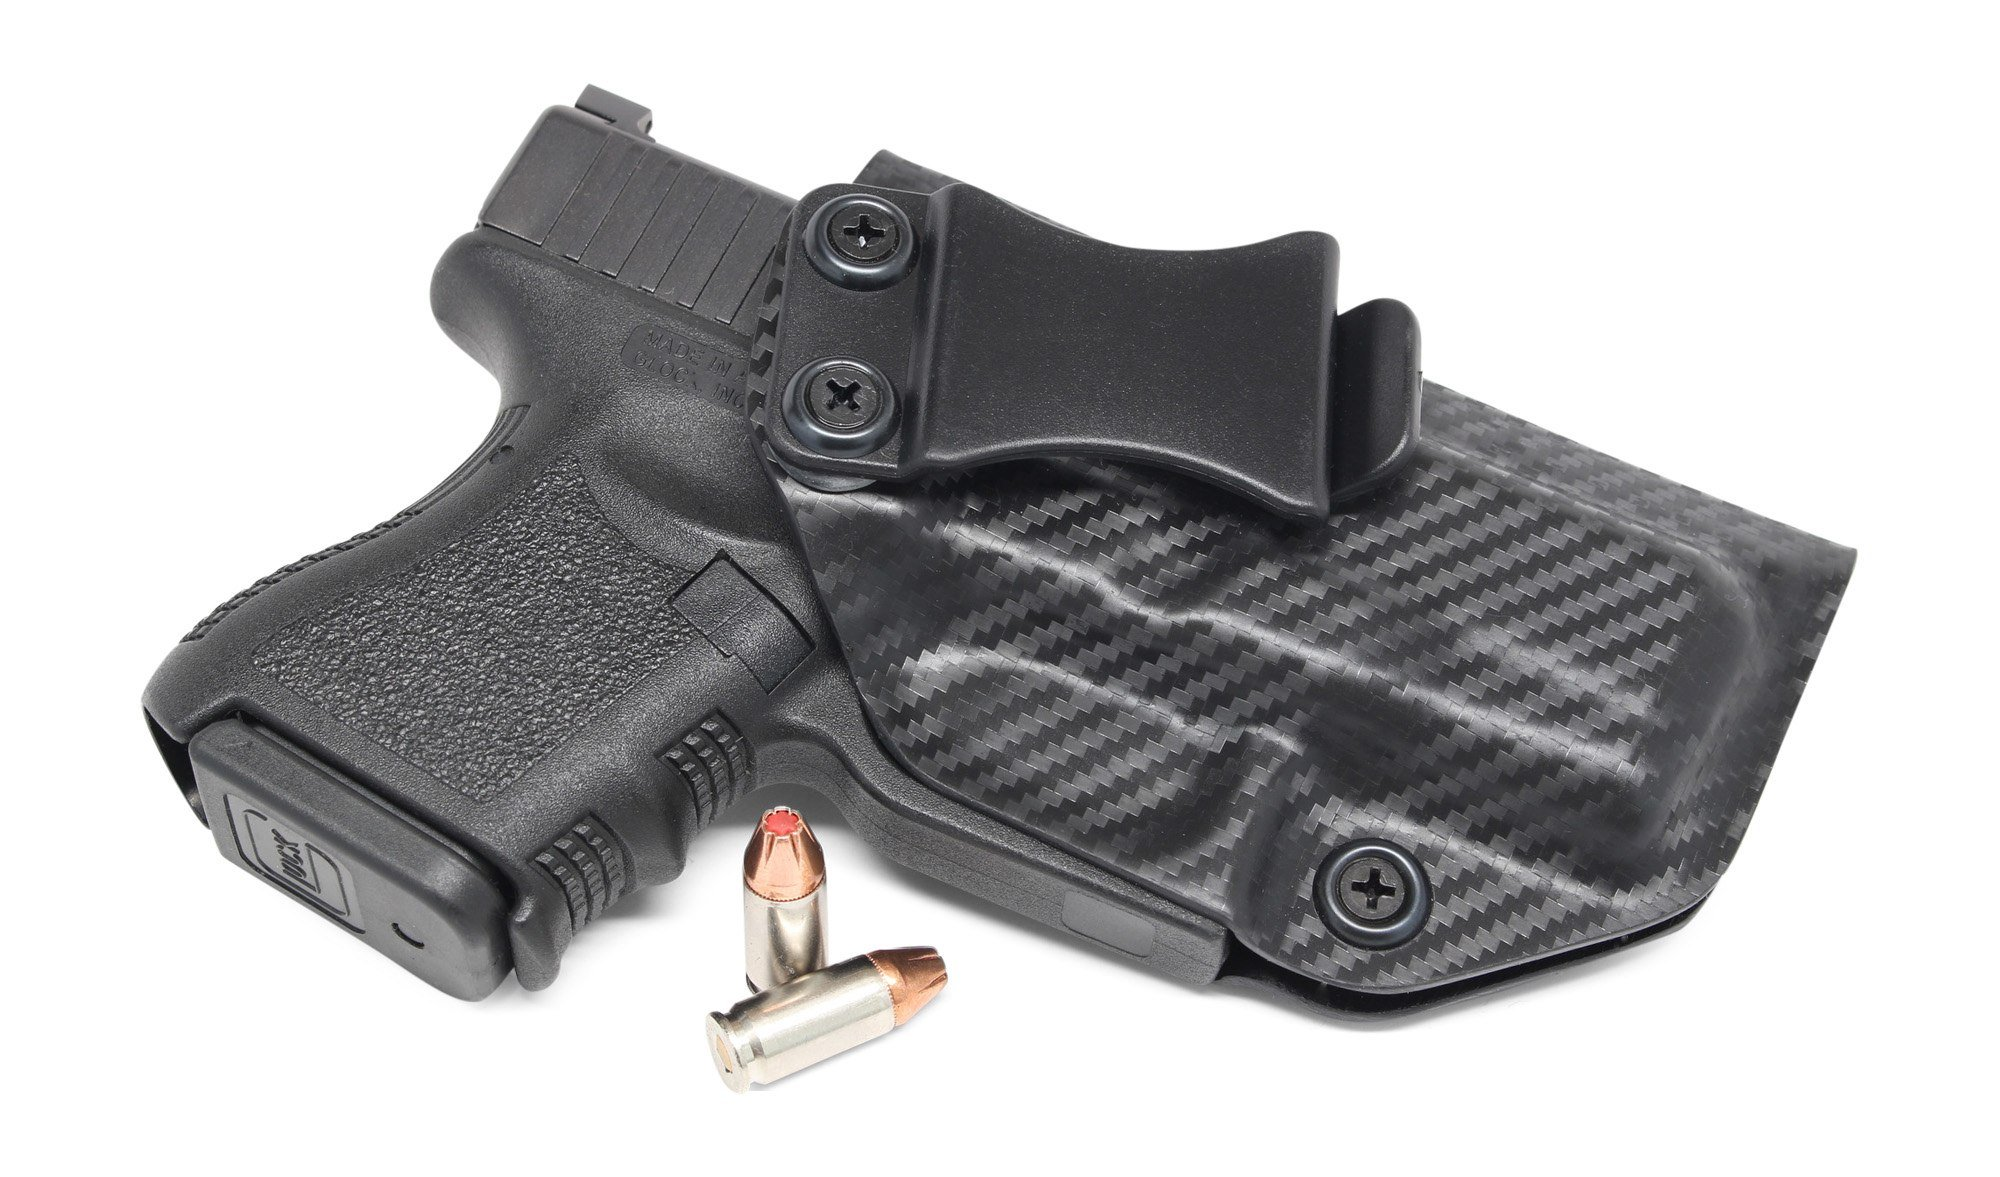 Concealment Express: Glock 26 27 33 IWB KYDEX Holster by Concealment Express